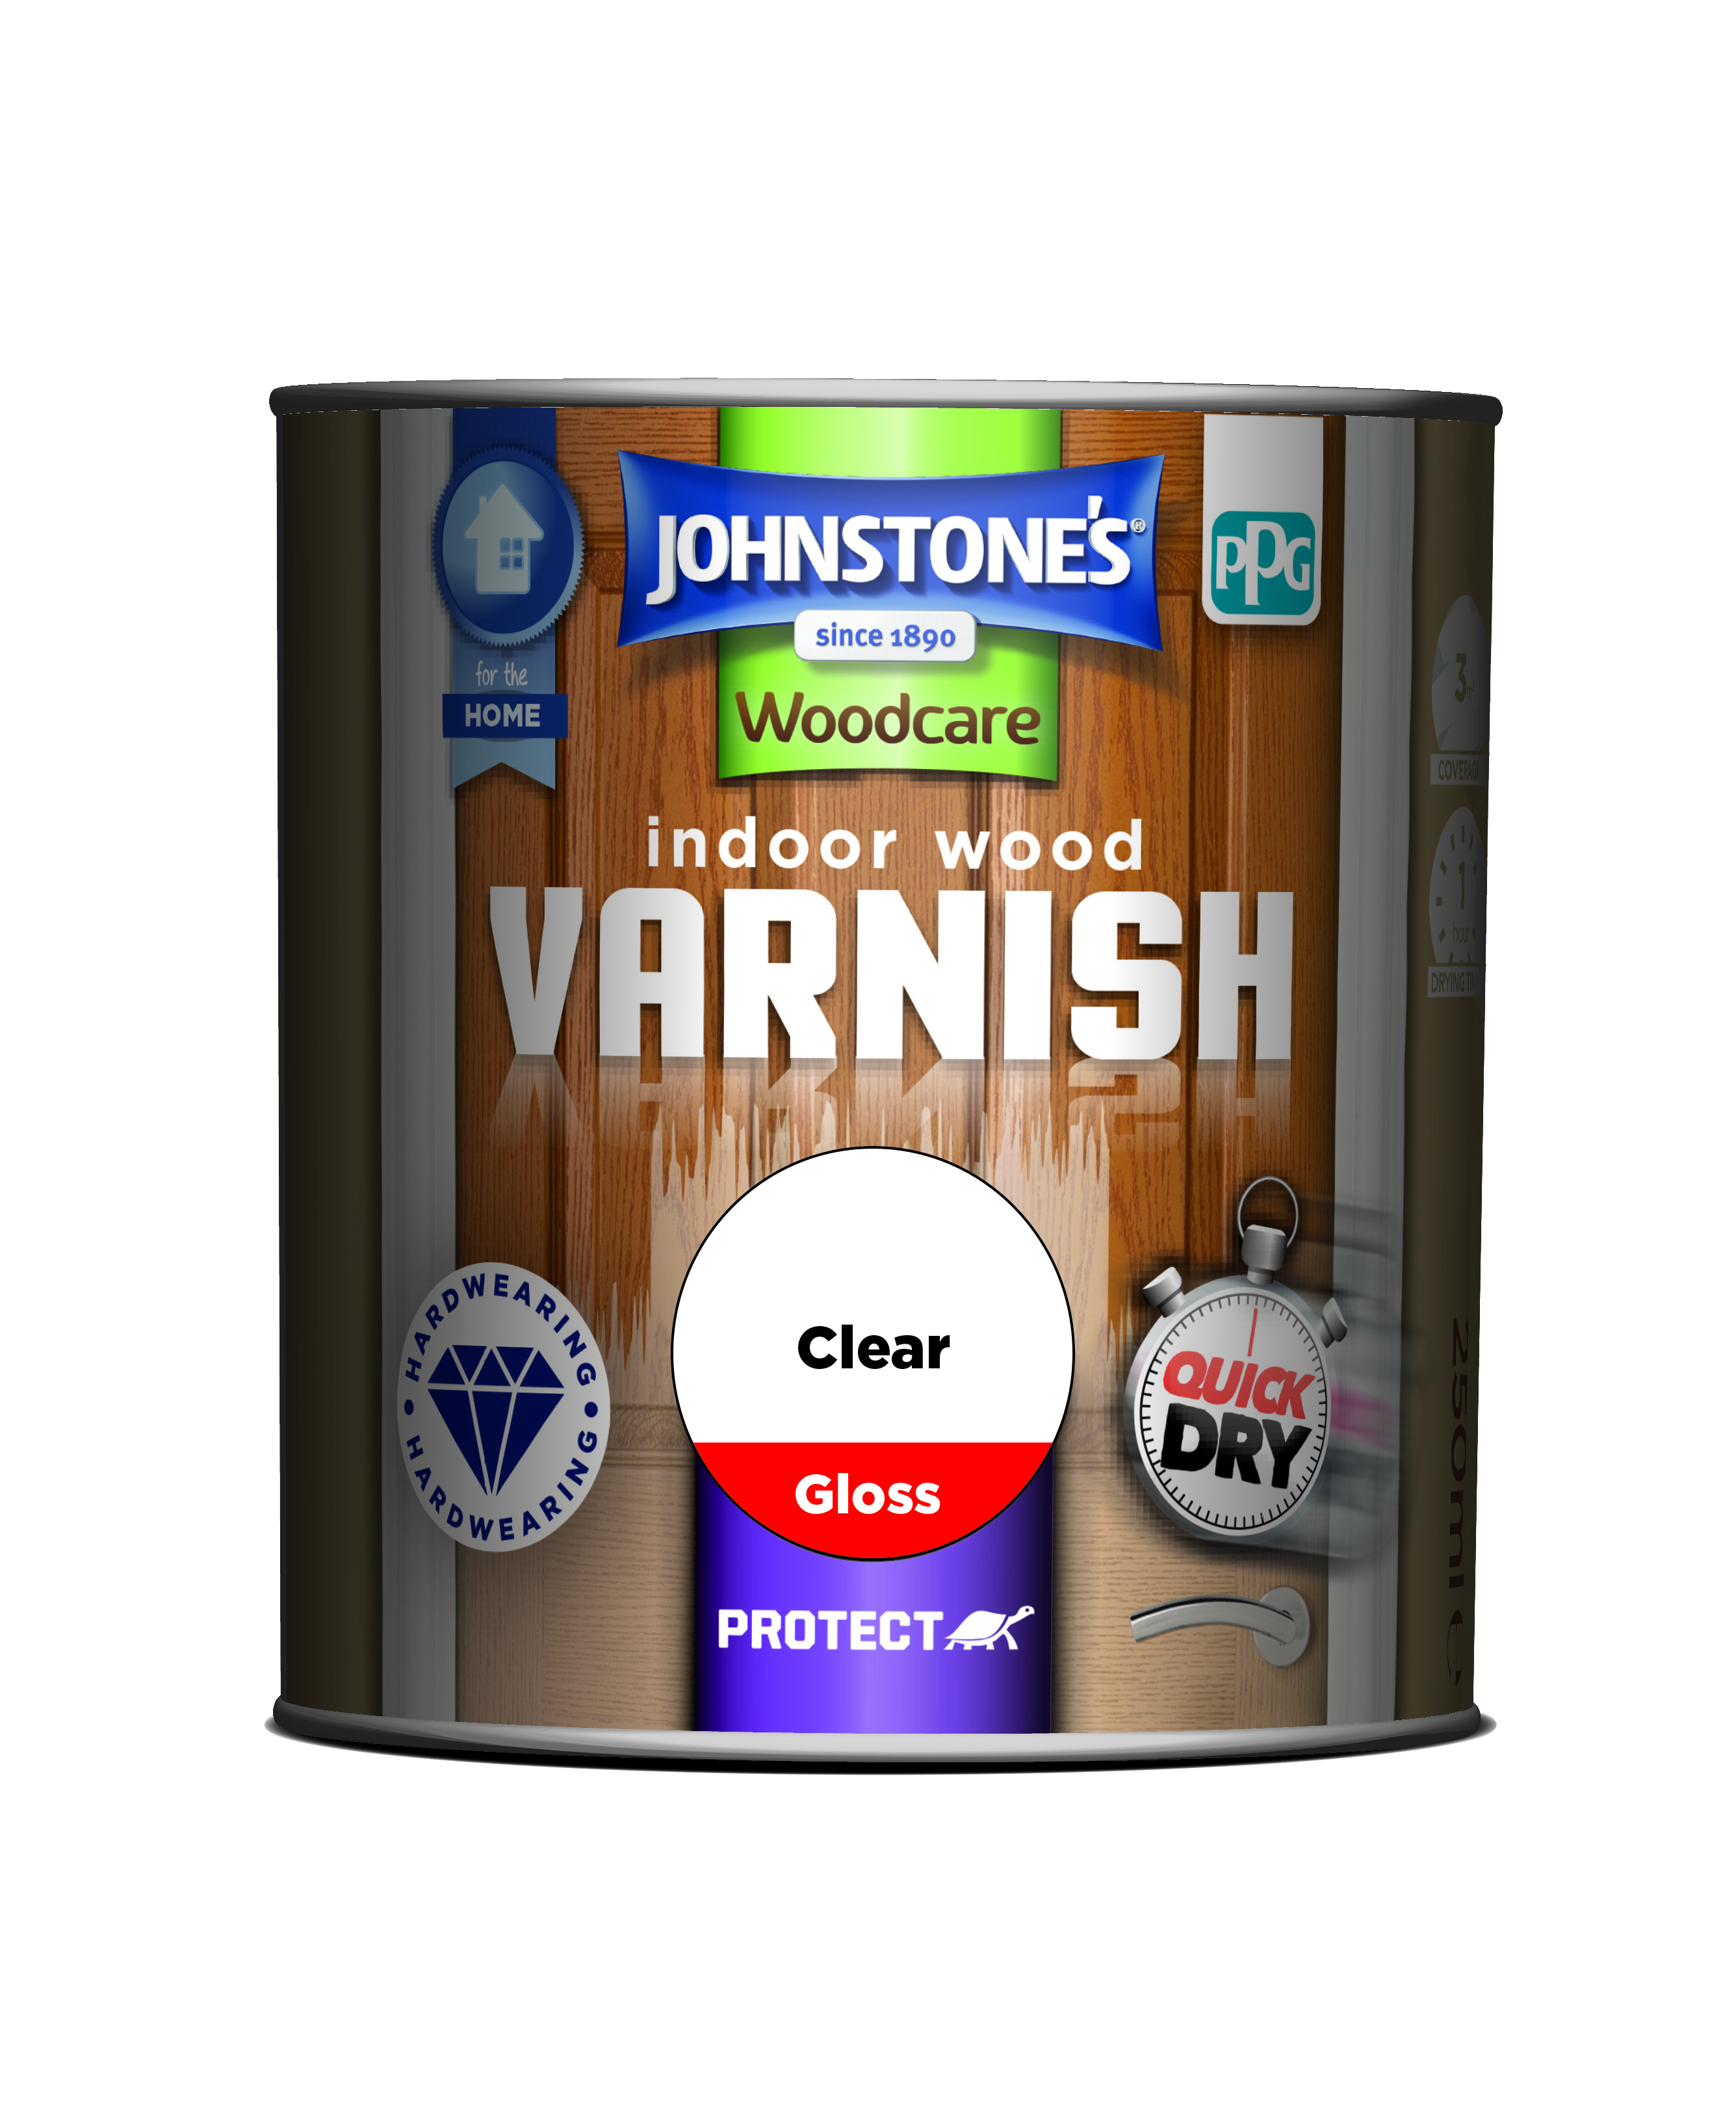 Johnstones Woodcare Quick Drying Interior Varnish Gloss Clear 250ml